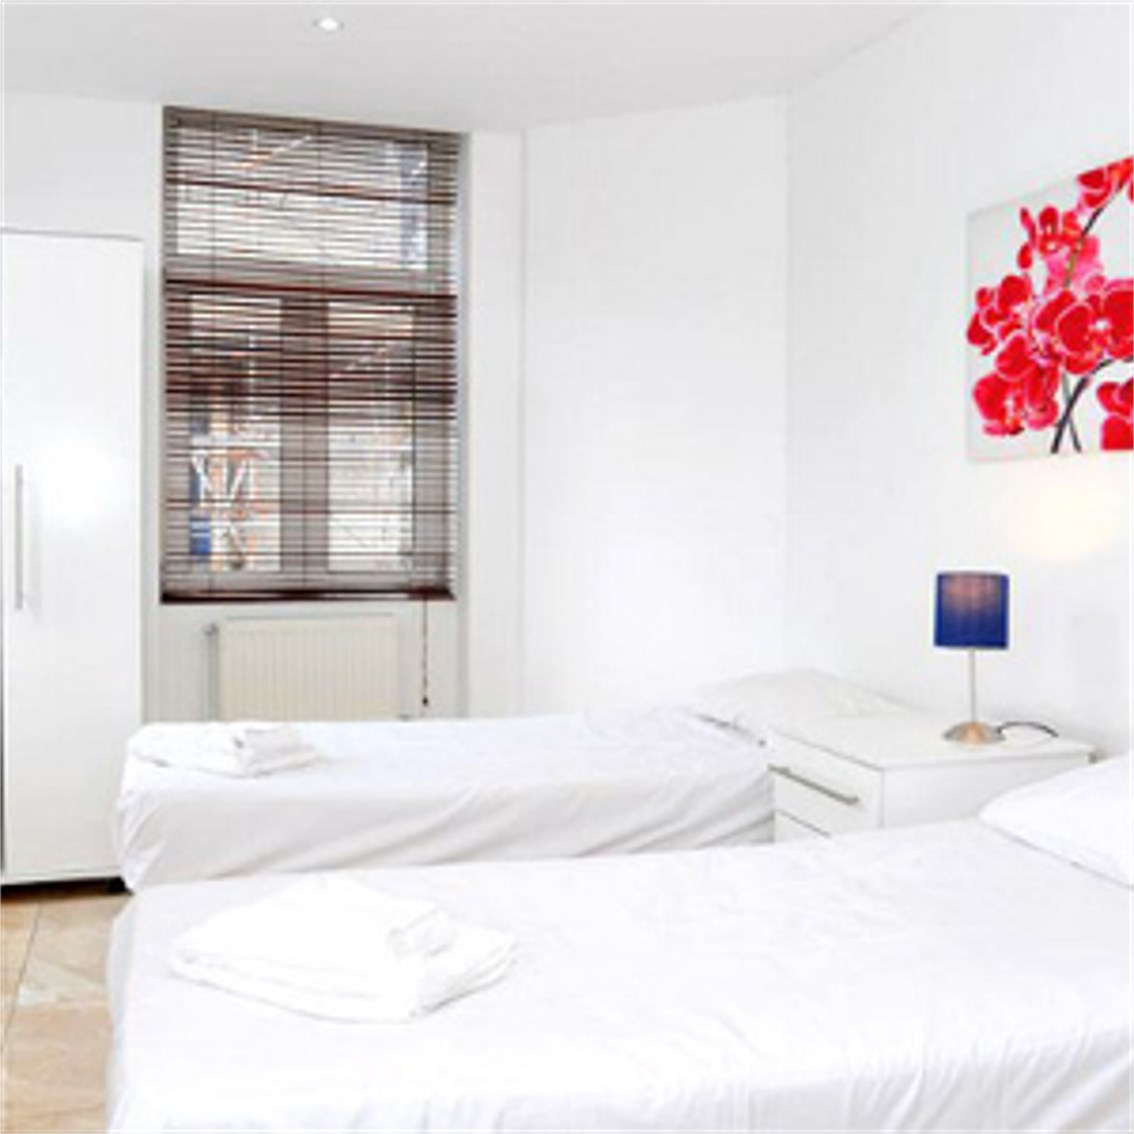 TravelStay Hammersmith Rooms Hostel - Forth Image